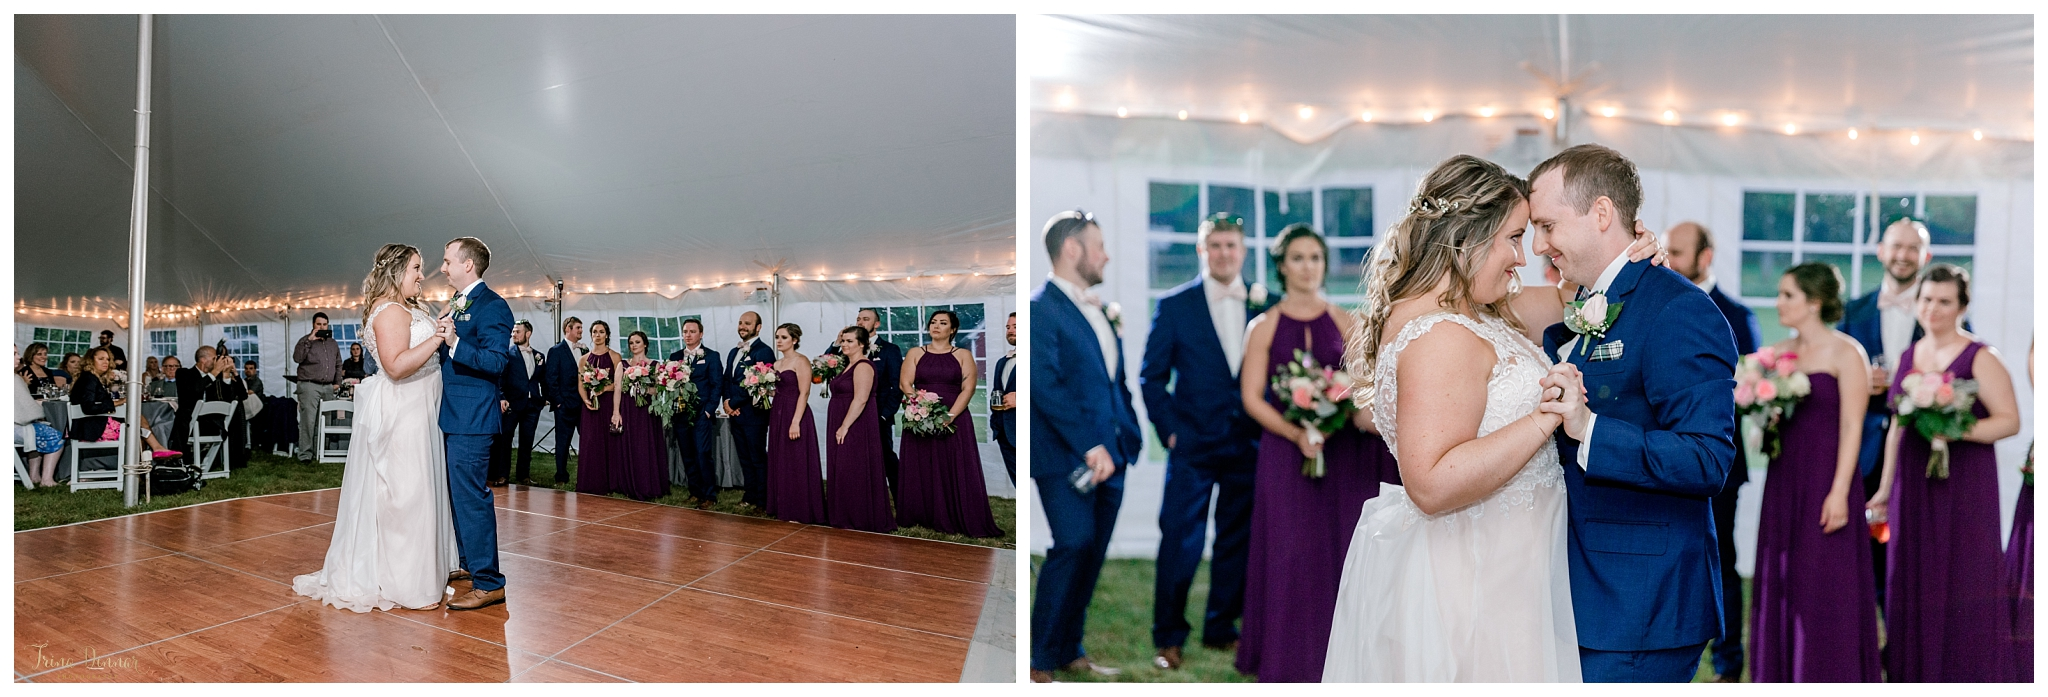 Jess and Dan's First Dance at Boothbay Railway Village Wedding